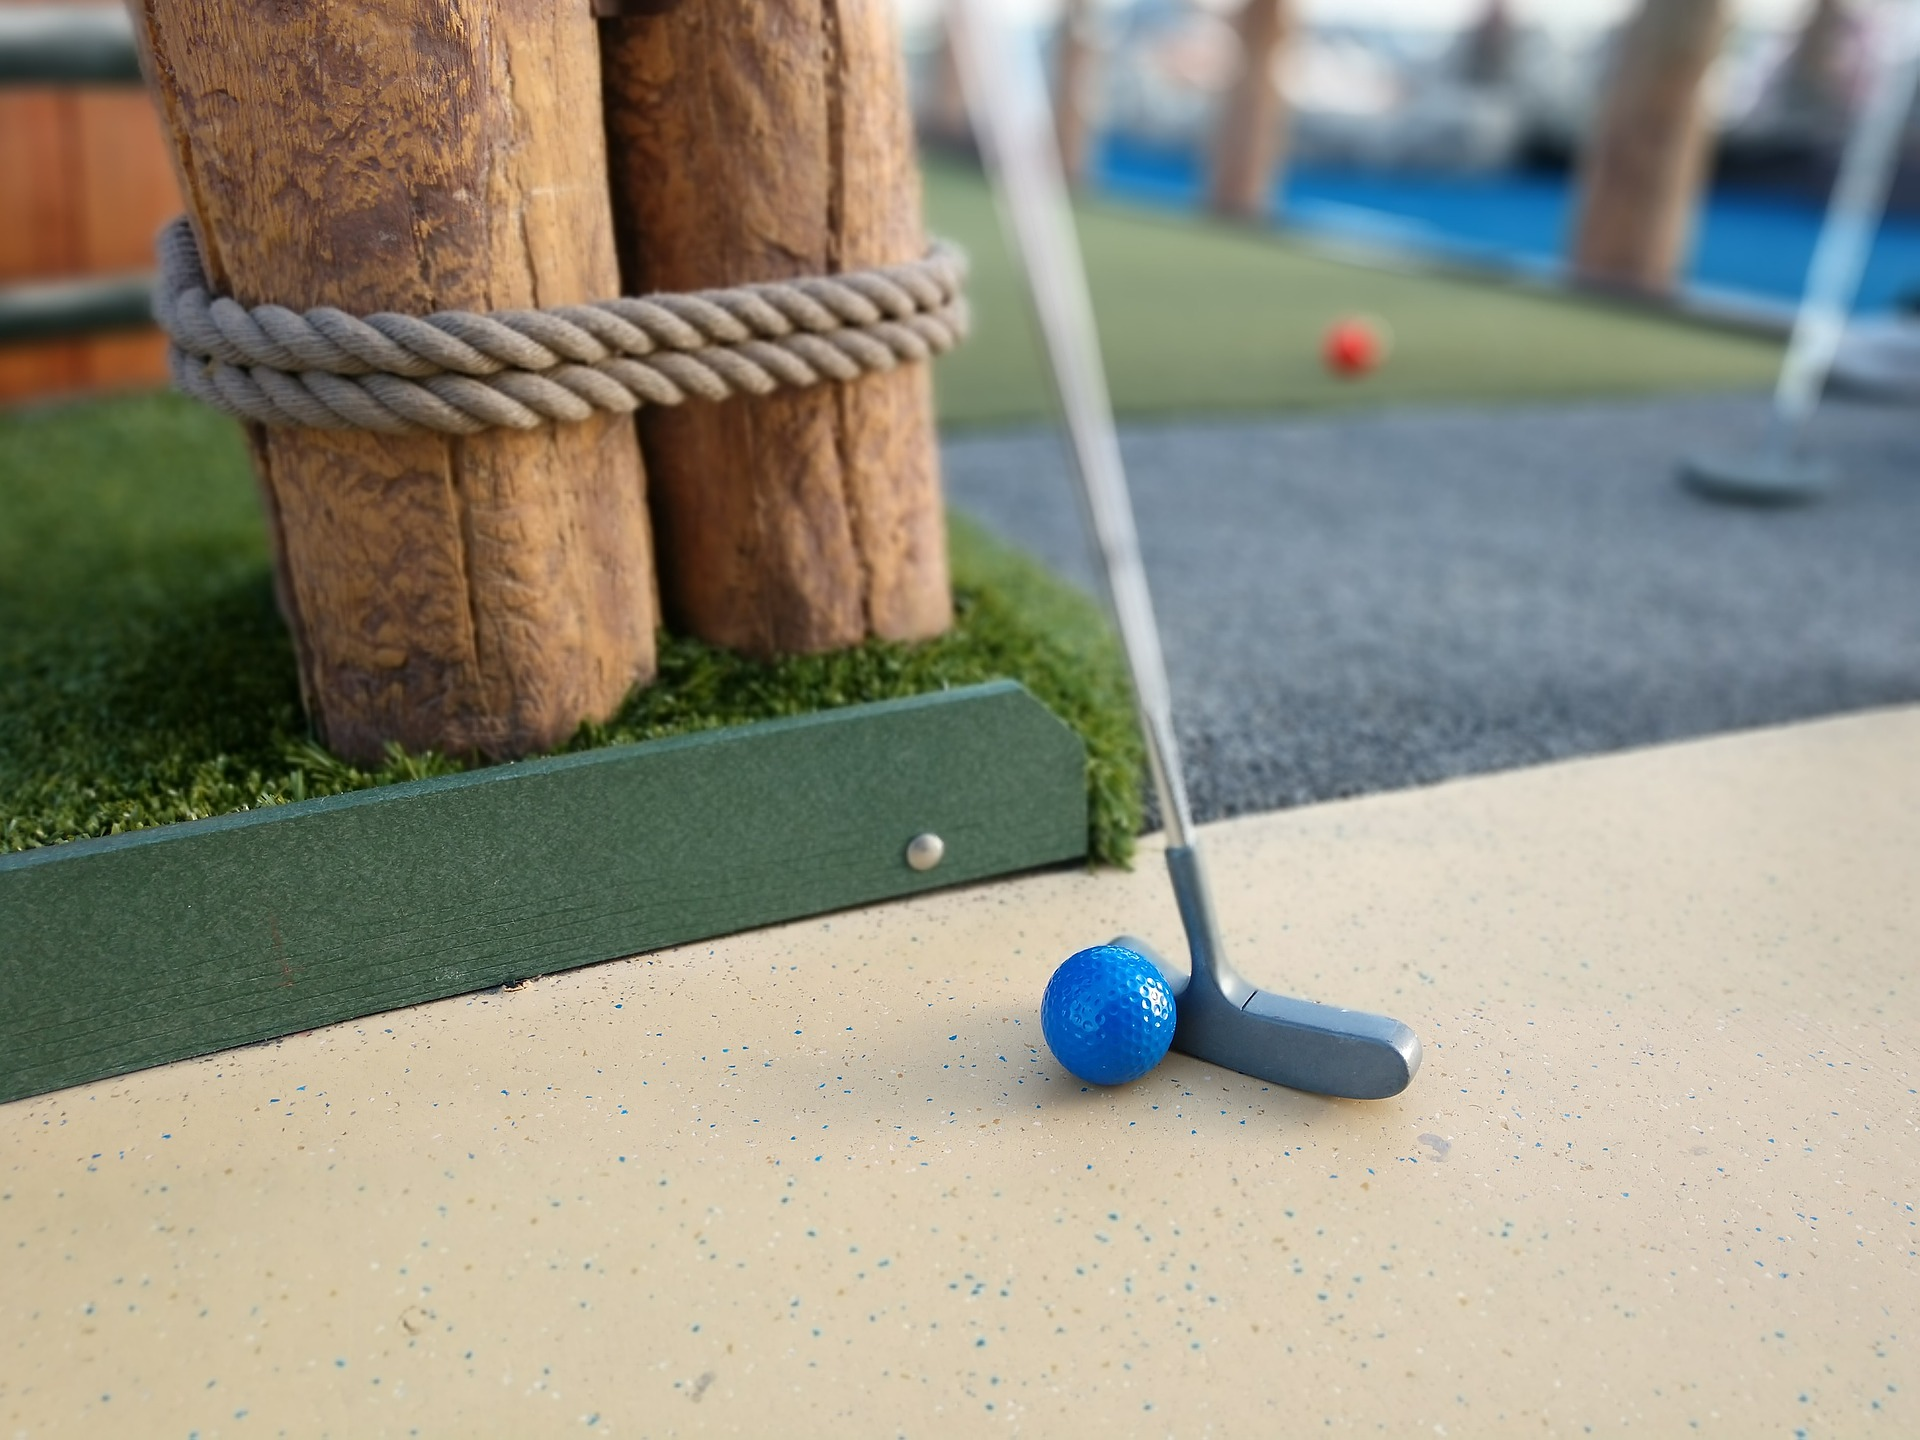 Mini Golf ball and putter